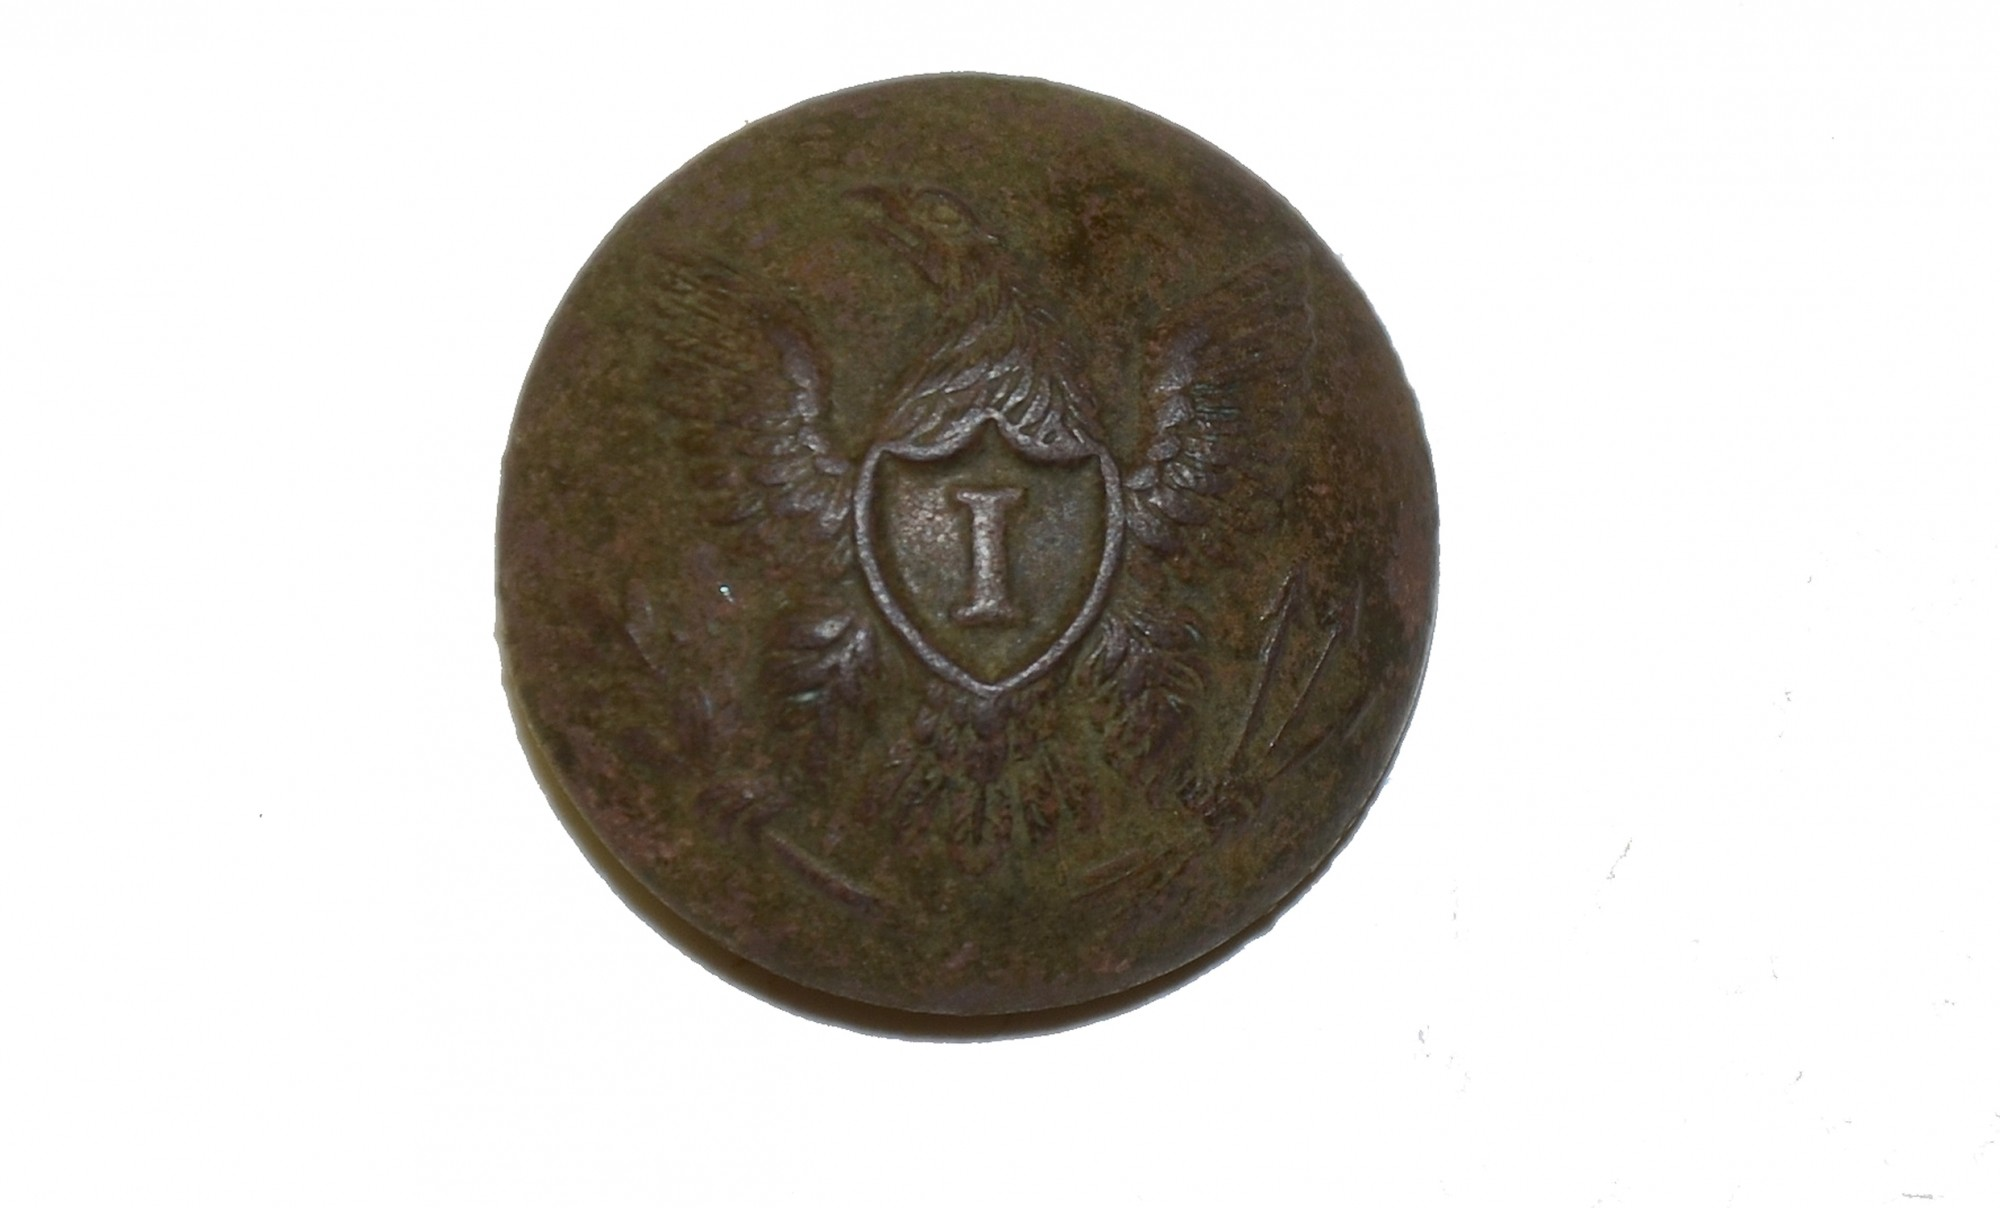 US INFANTRY 'I' OFFICER'S COAT BUTTON RECOVERED AT GETTYSBURG